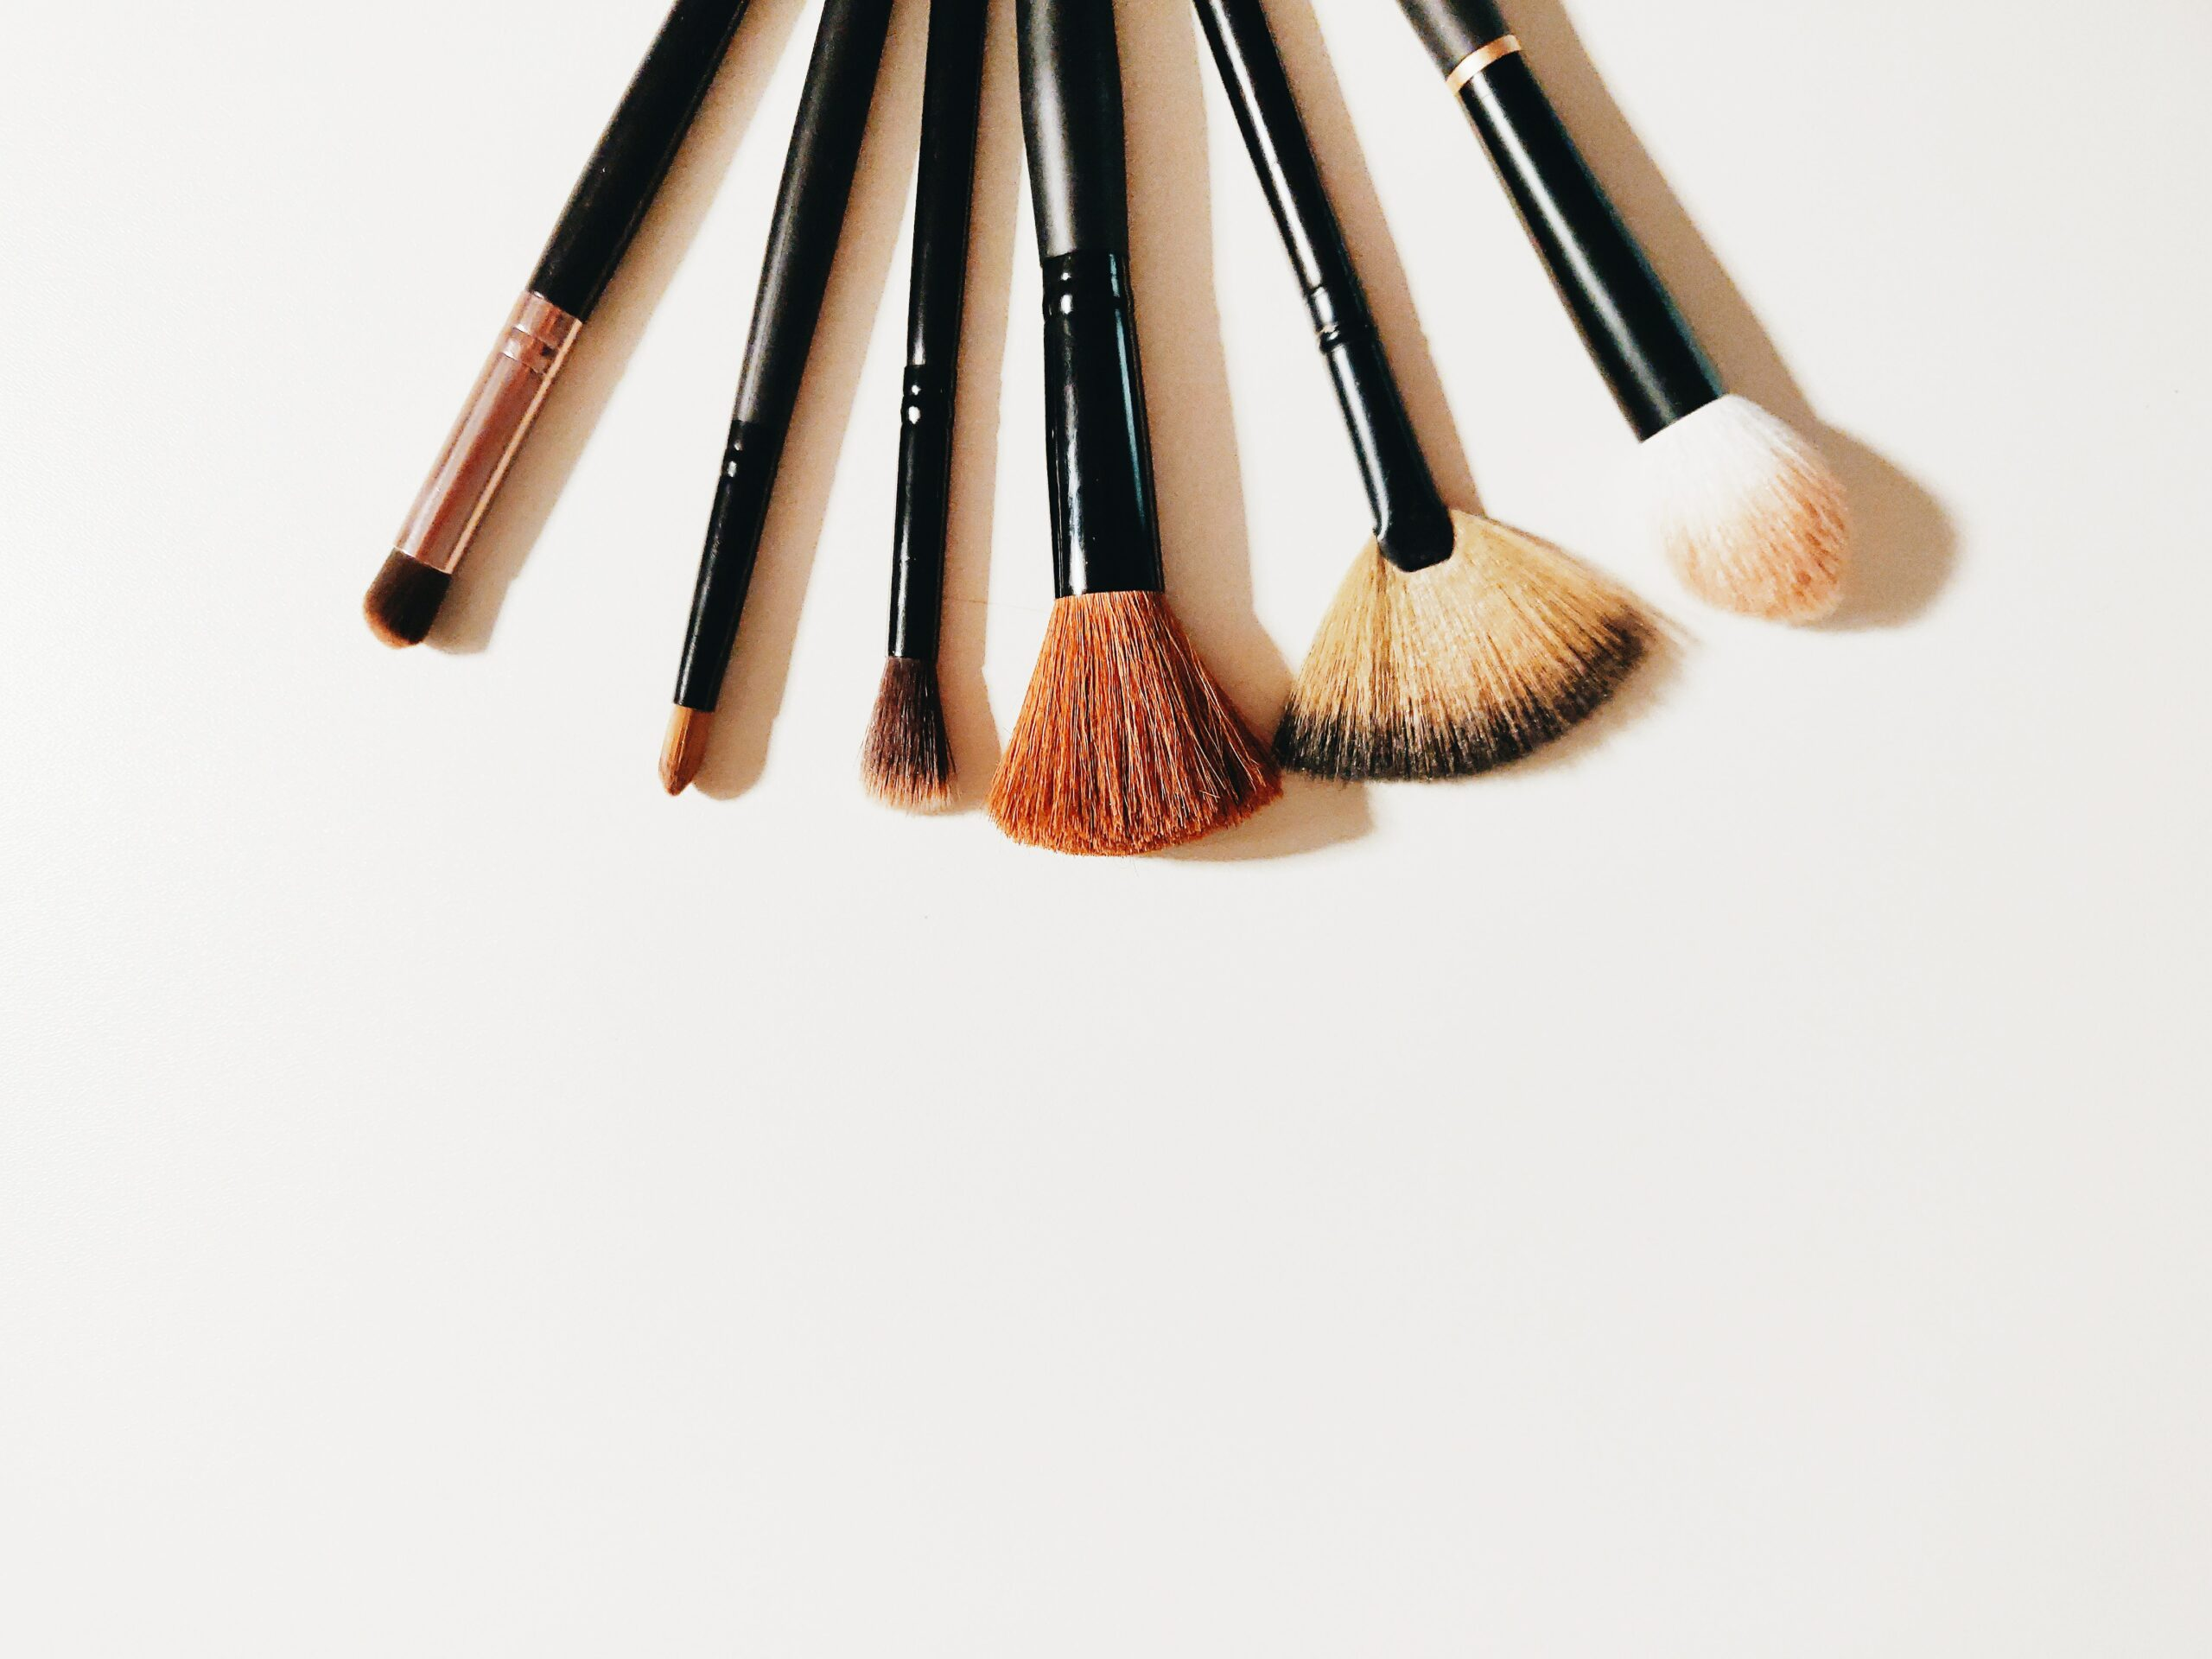 How to Clean Makeup Brushes at Home – 3 Easy Steps